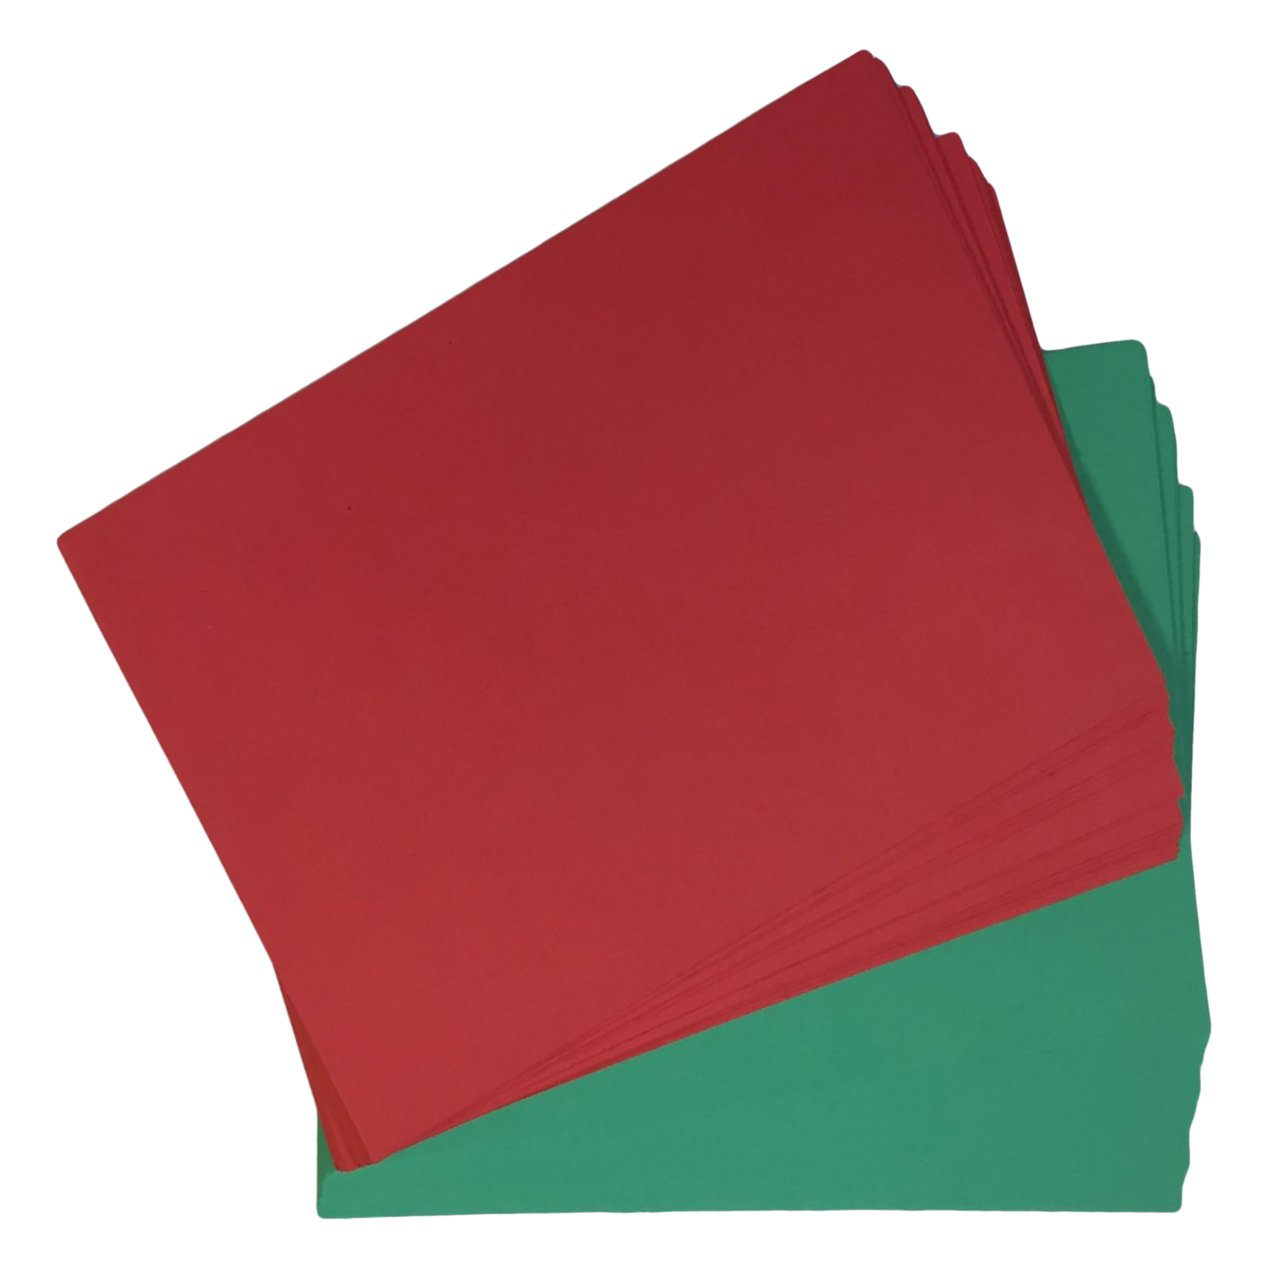 House of Card & paper A5 Christmas Card - Red/Green Stationery & Craft Select HCP312